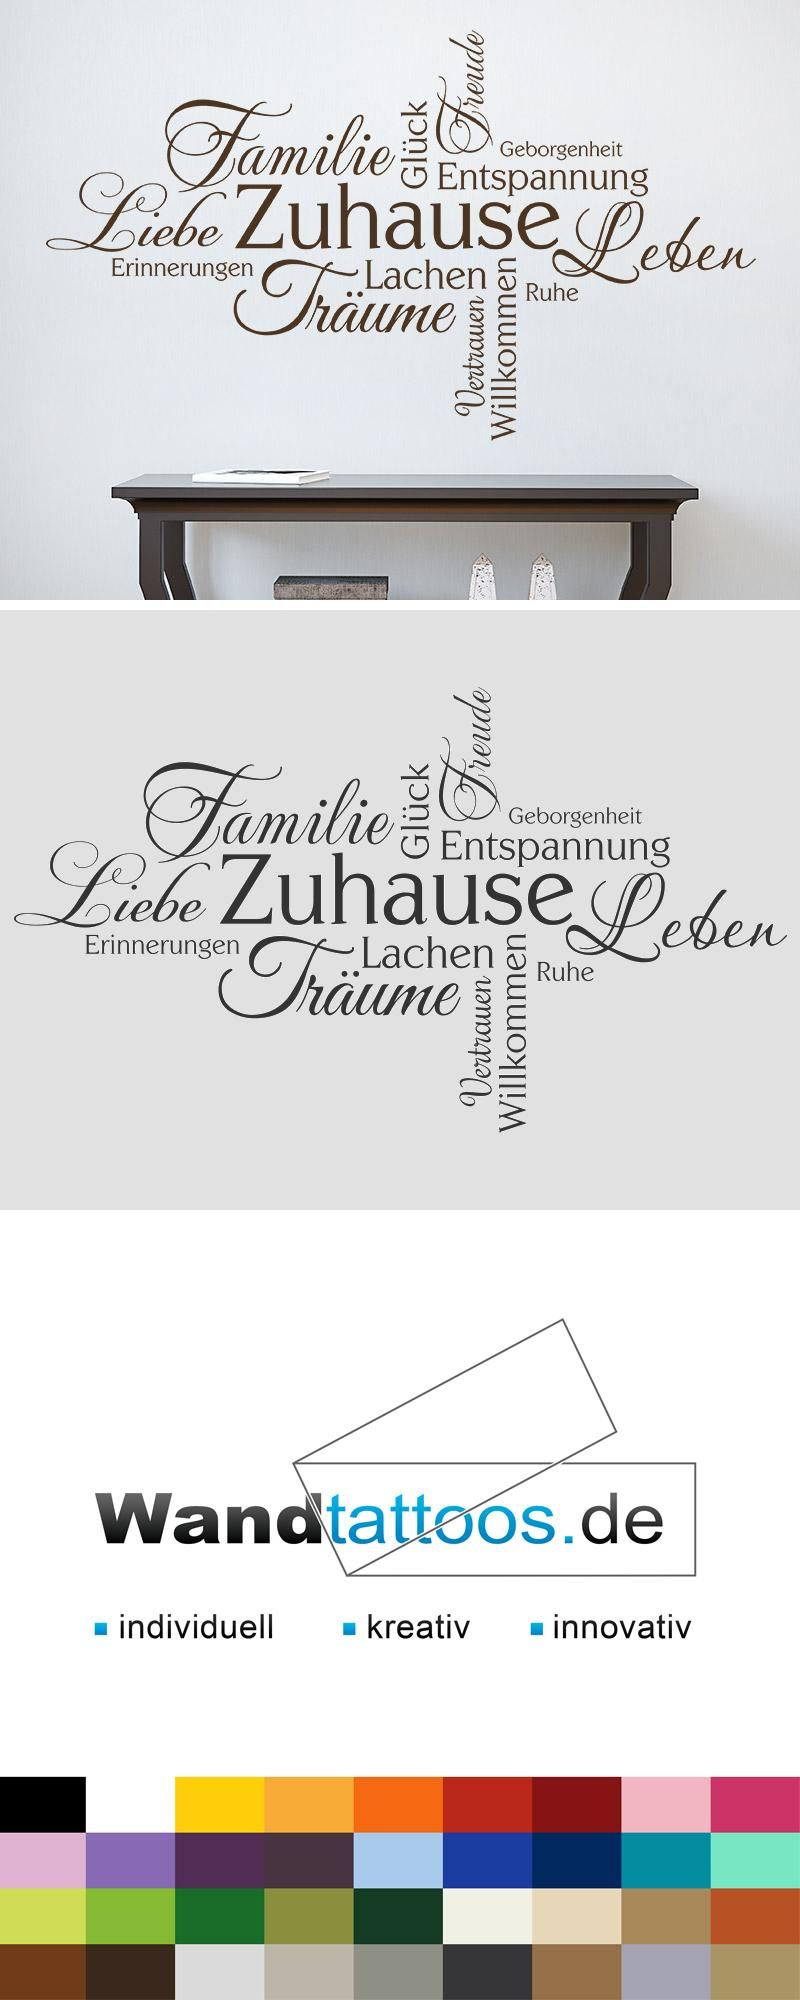 wandtattoo zuhause wortwolke familie gl ck wortwolken lieblingsfarbe und wandtattoos. Black Bedroom Furniture Sets. Home Design Ideas